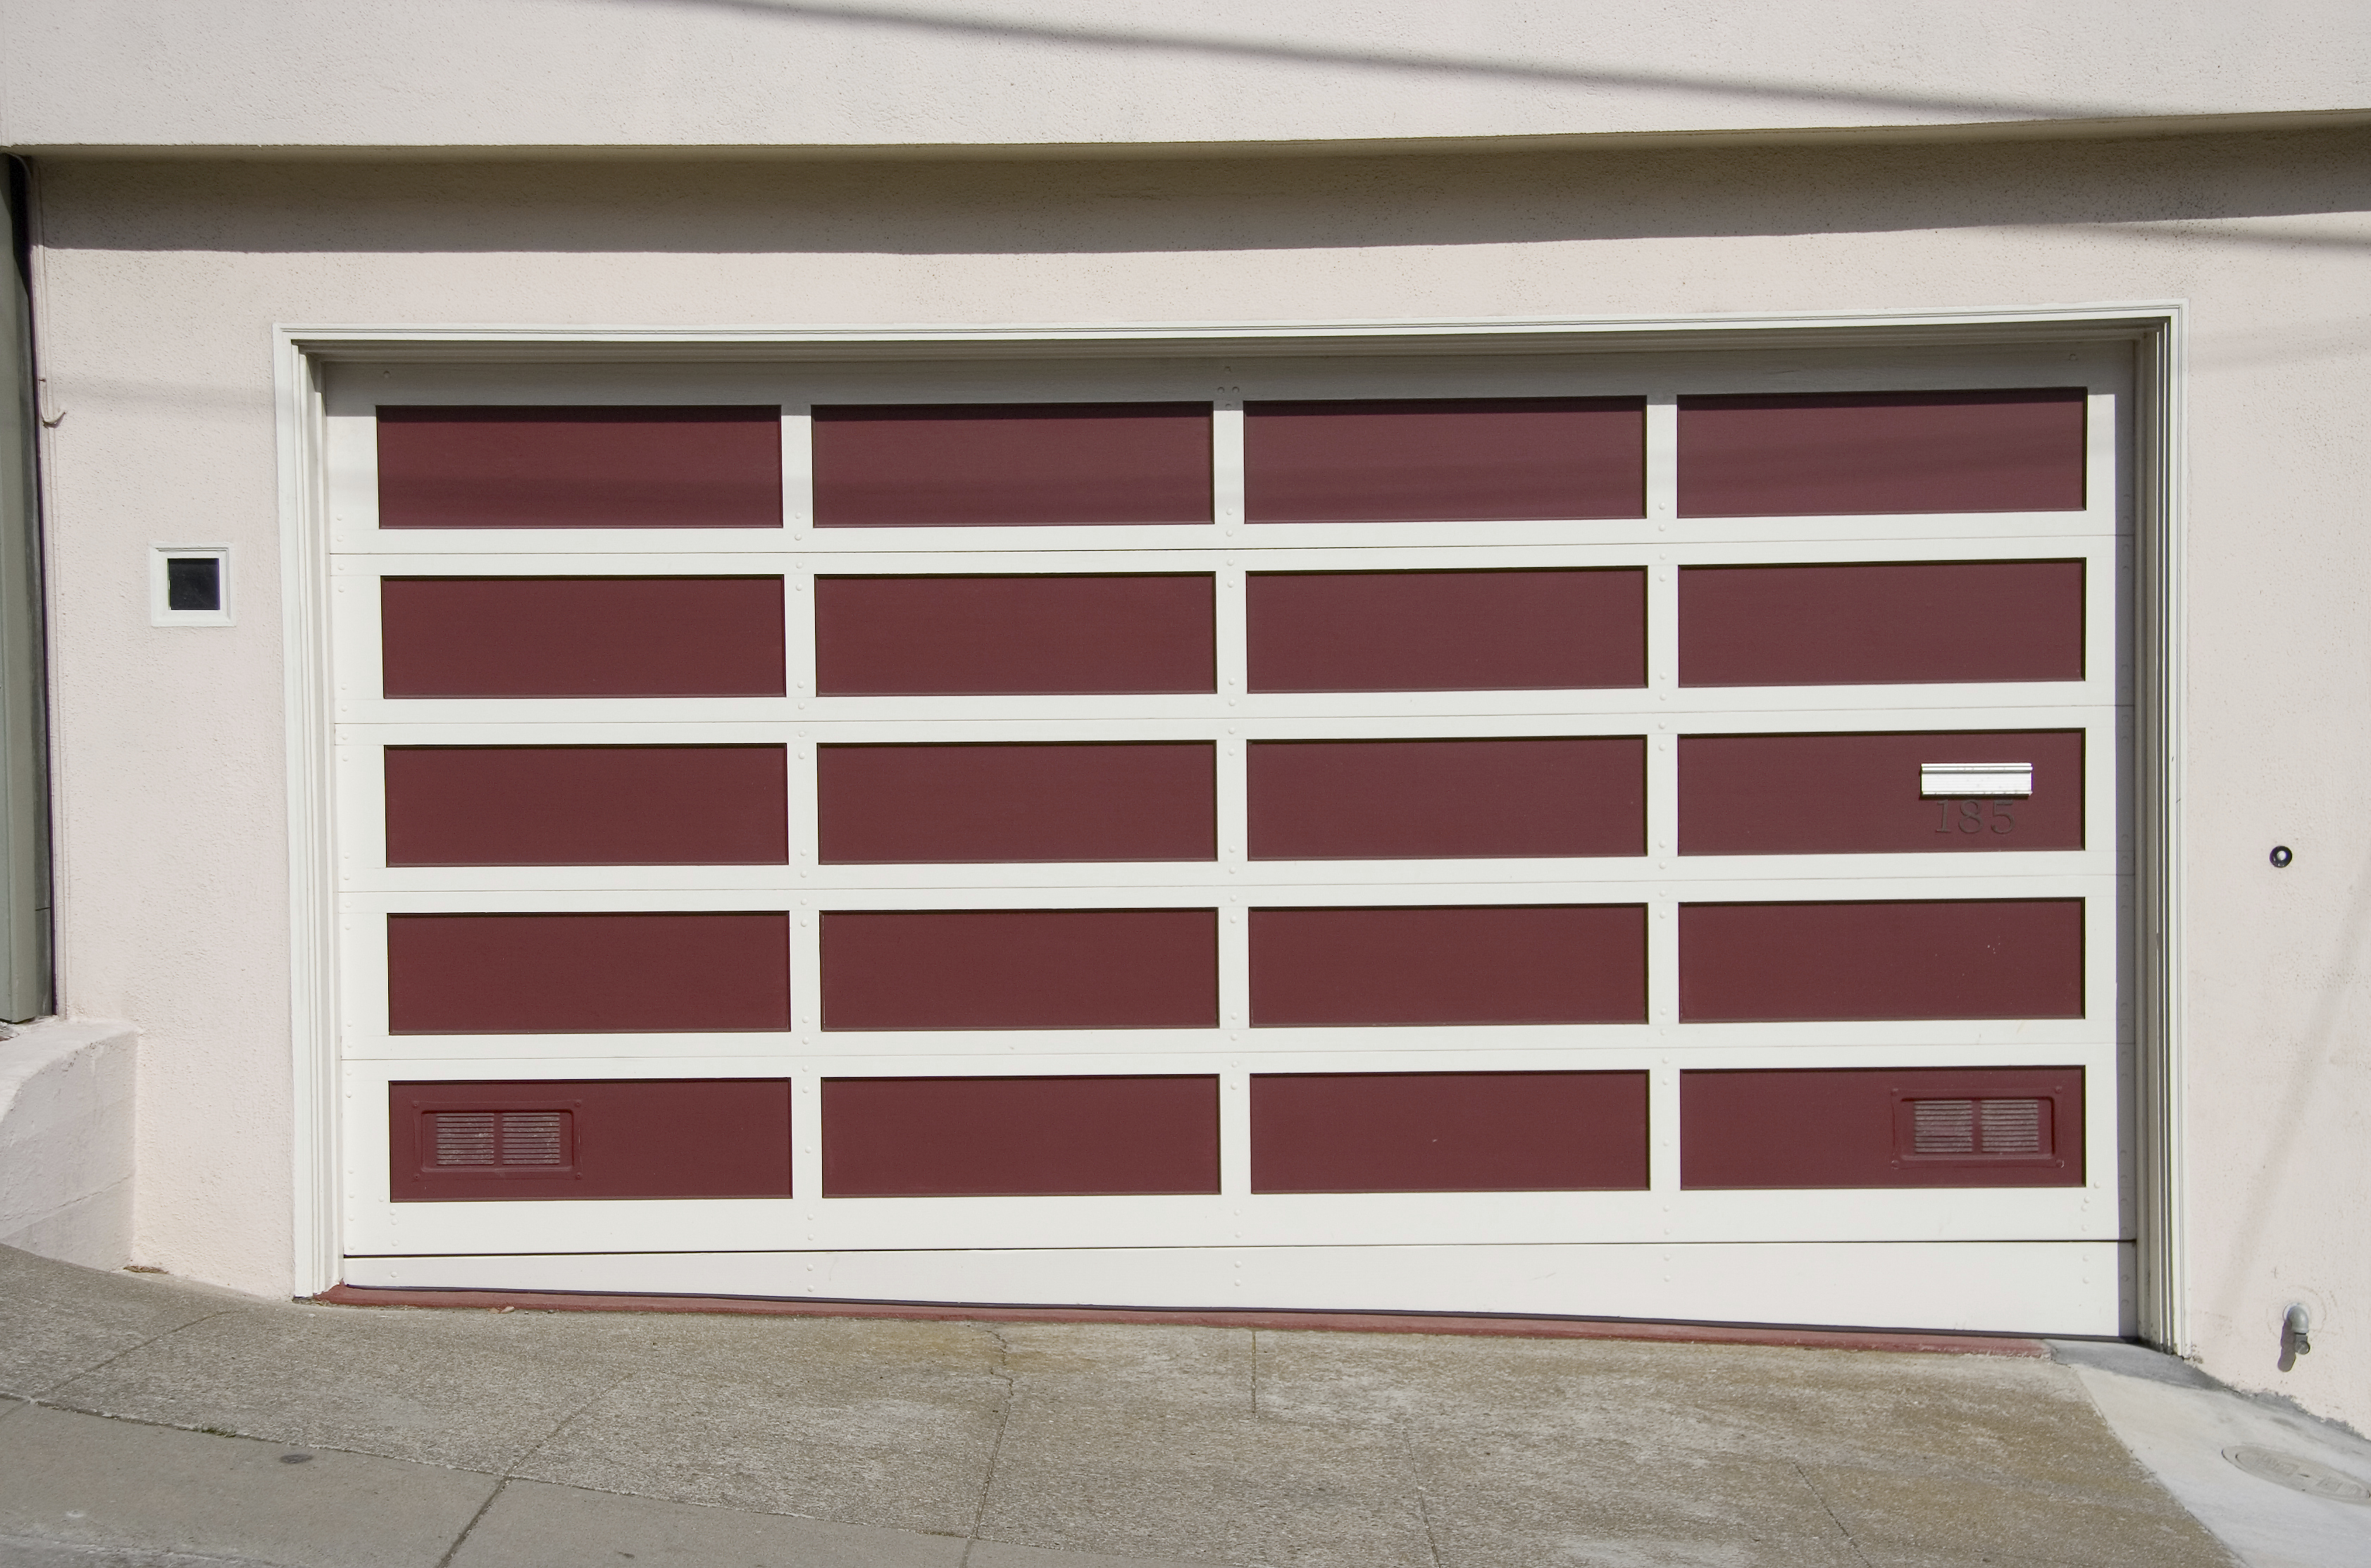 anozira garageabove ca size door full bcb chattanooga doors obrien sacramento of beautiful garage